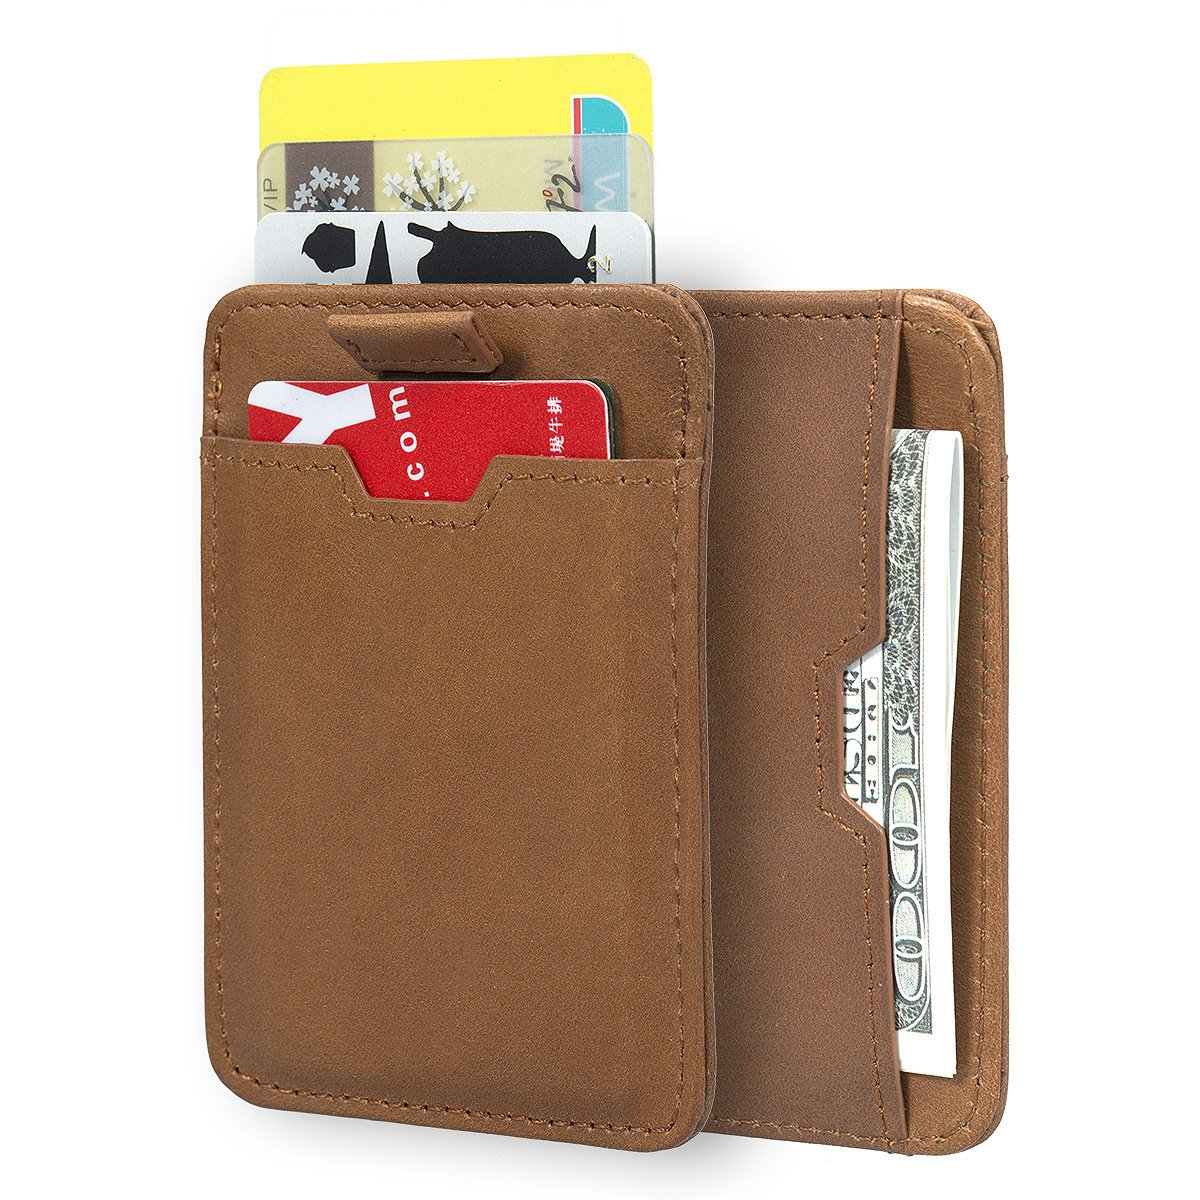 ManChDa RFID Blocking Money Clip Aluminum Pop-up Card Case Magnet Slim Wallet USMQB061